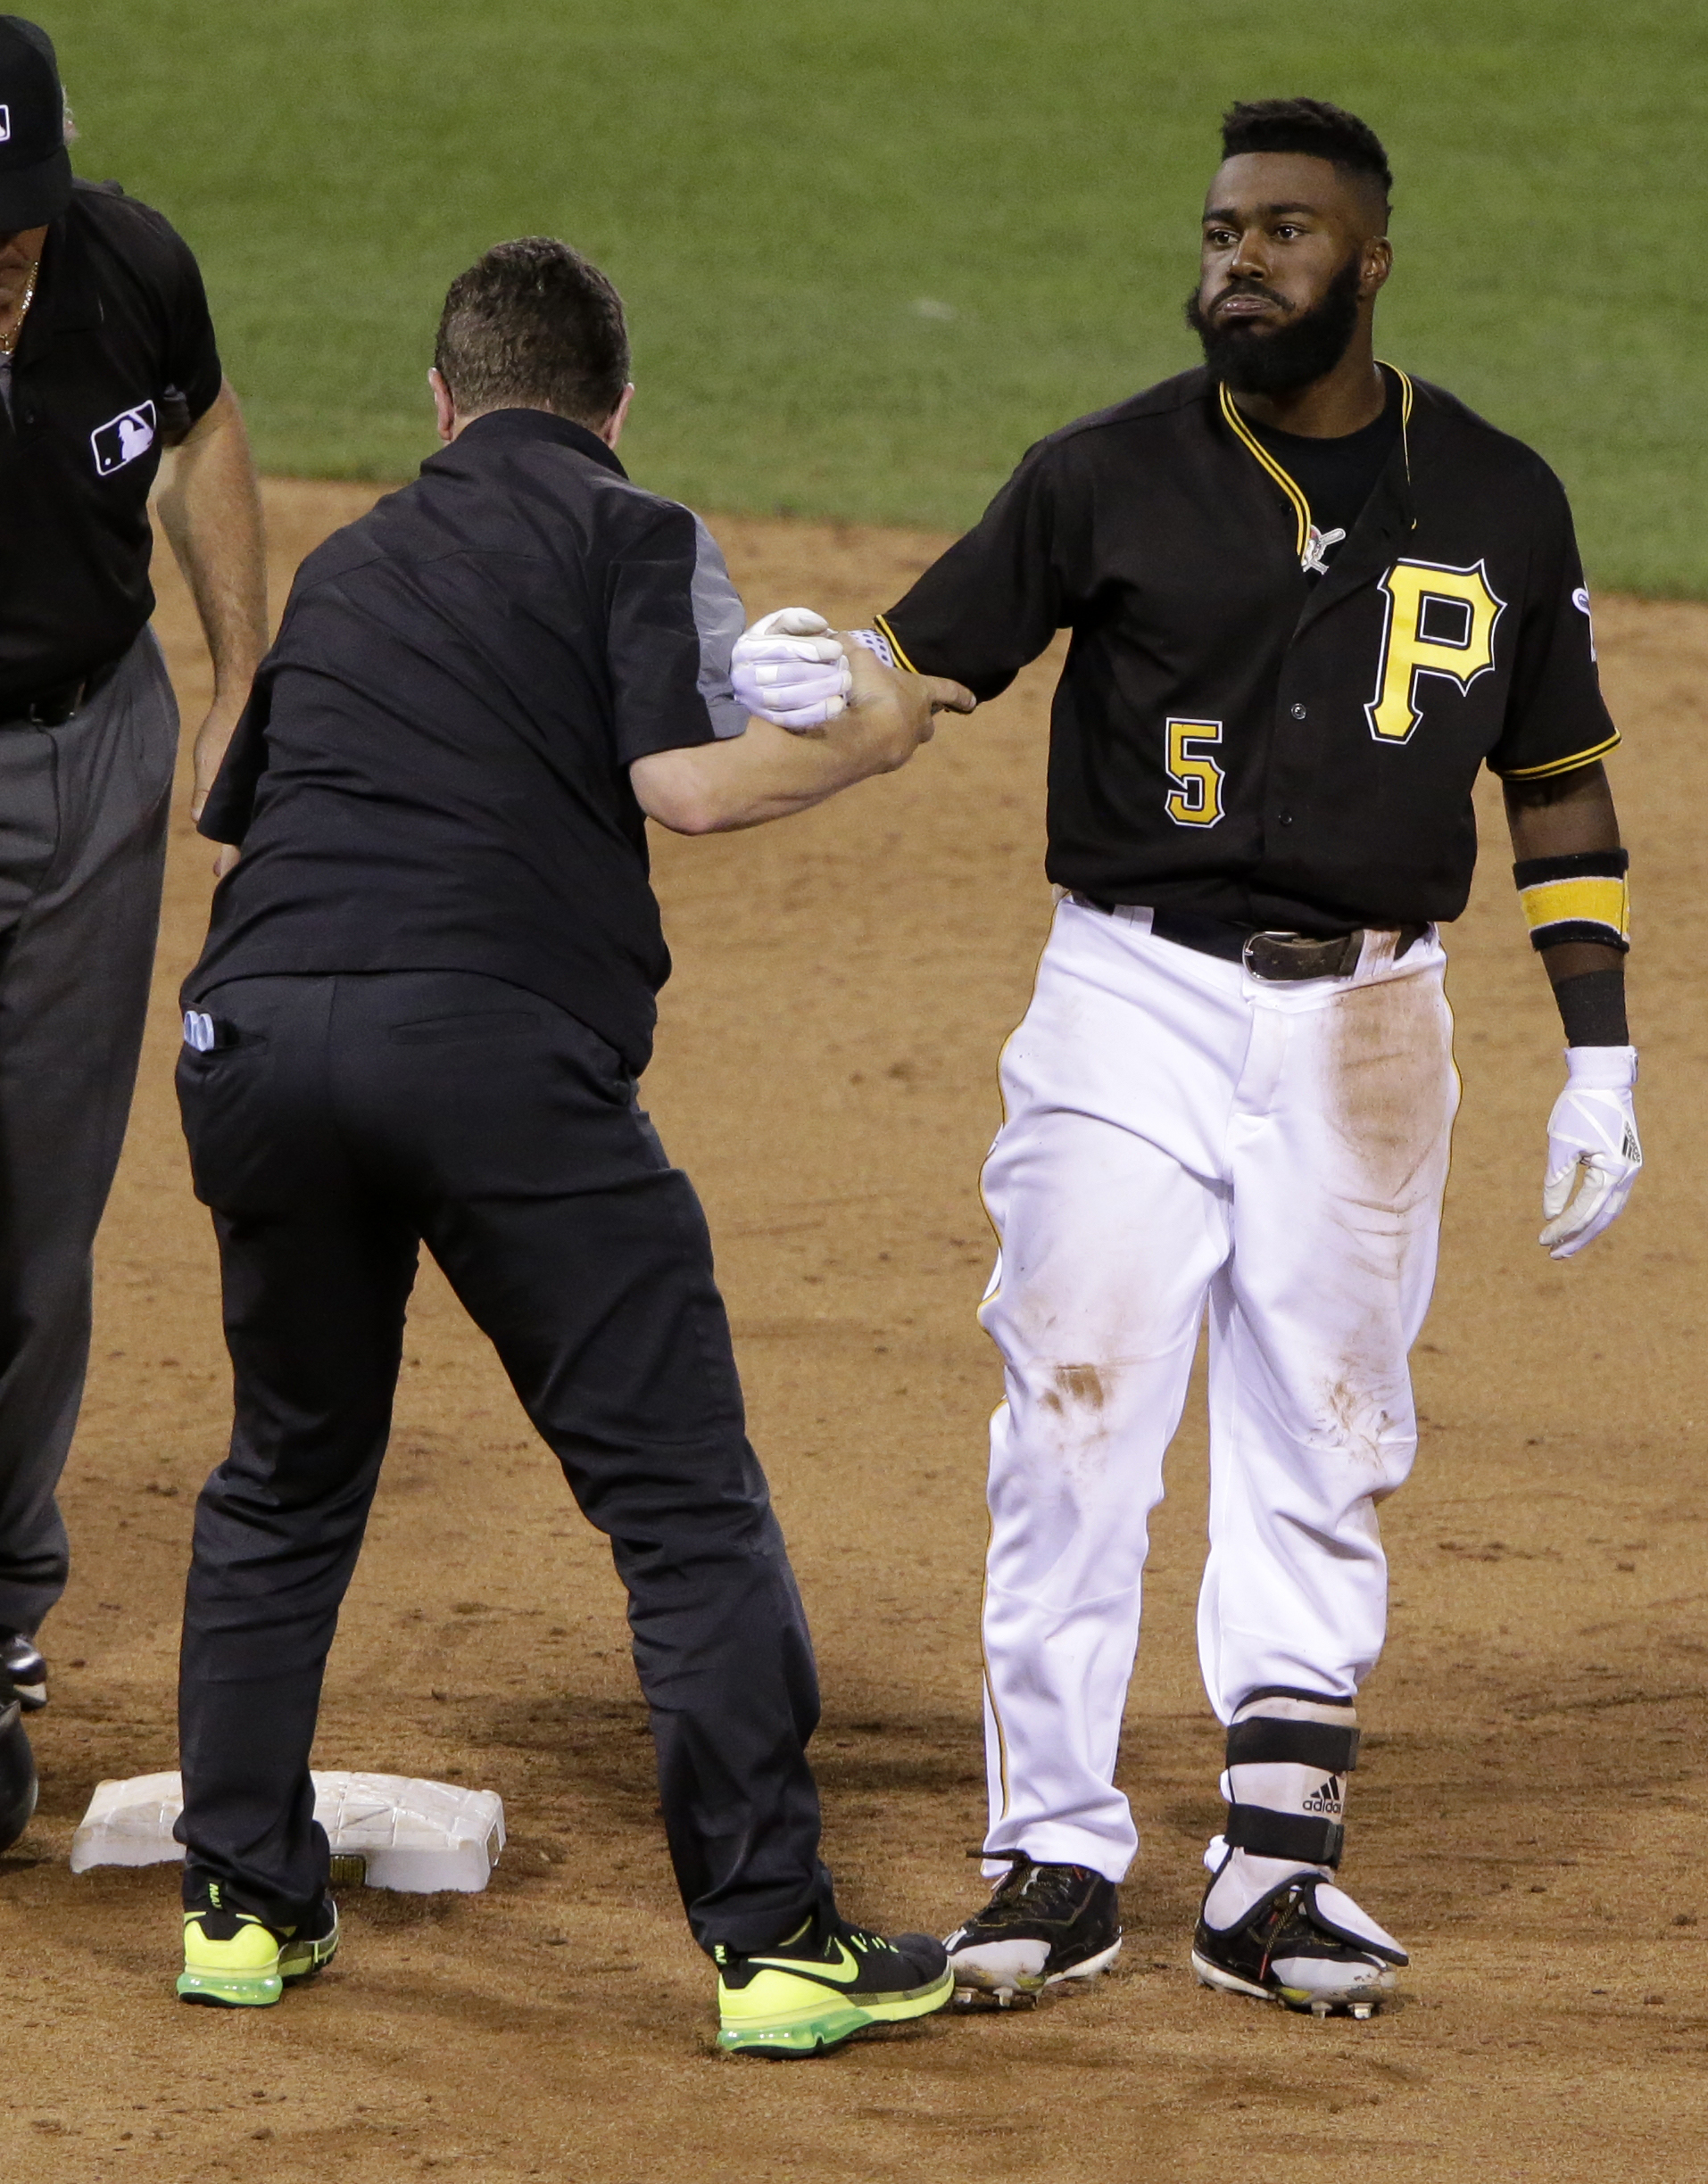 Pittsburgh Pirates' Josh Harrison (5) is helped up by a team trainer after driving in two runs with a double off Cincinnati Reds pitcher Josh Smith in the sixth inning of a baseball game in Pittsburgh, Saturday, Sept. 10, 2016. Harrison was injured on the